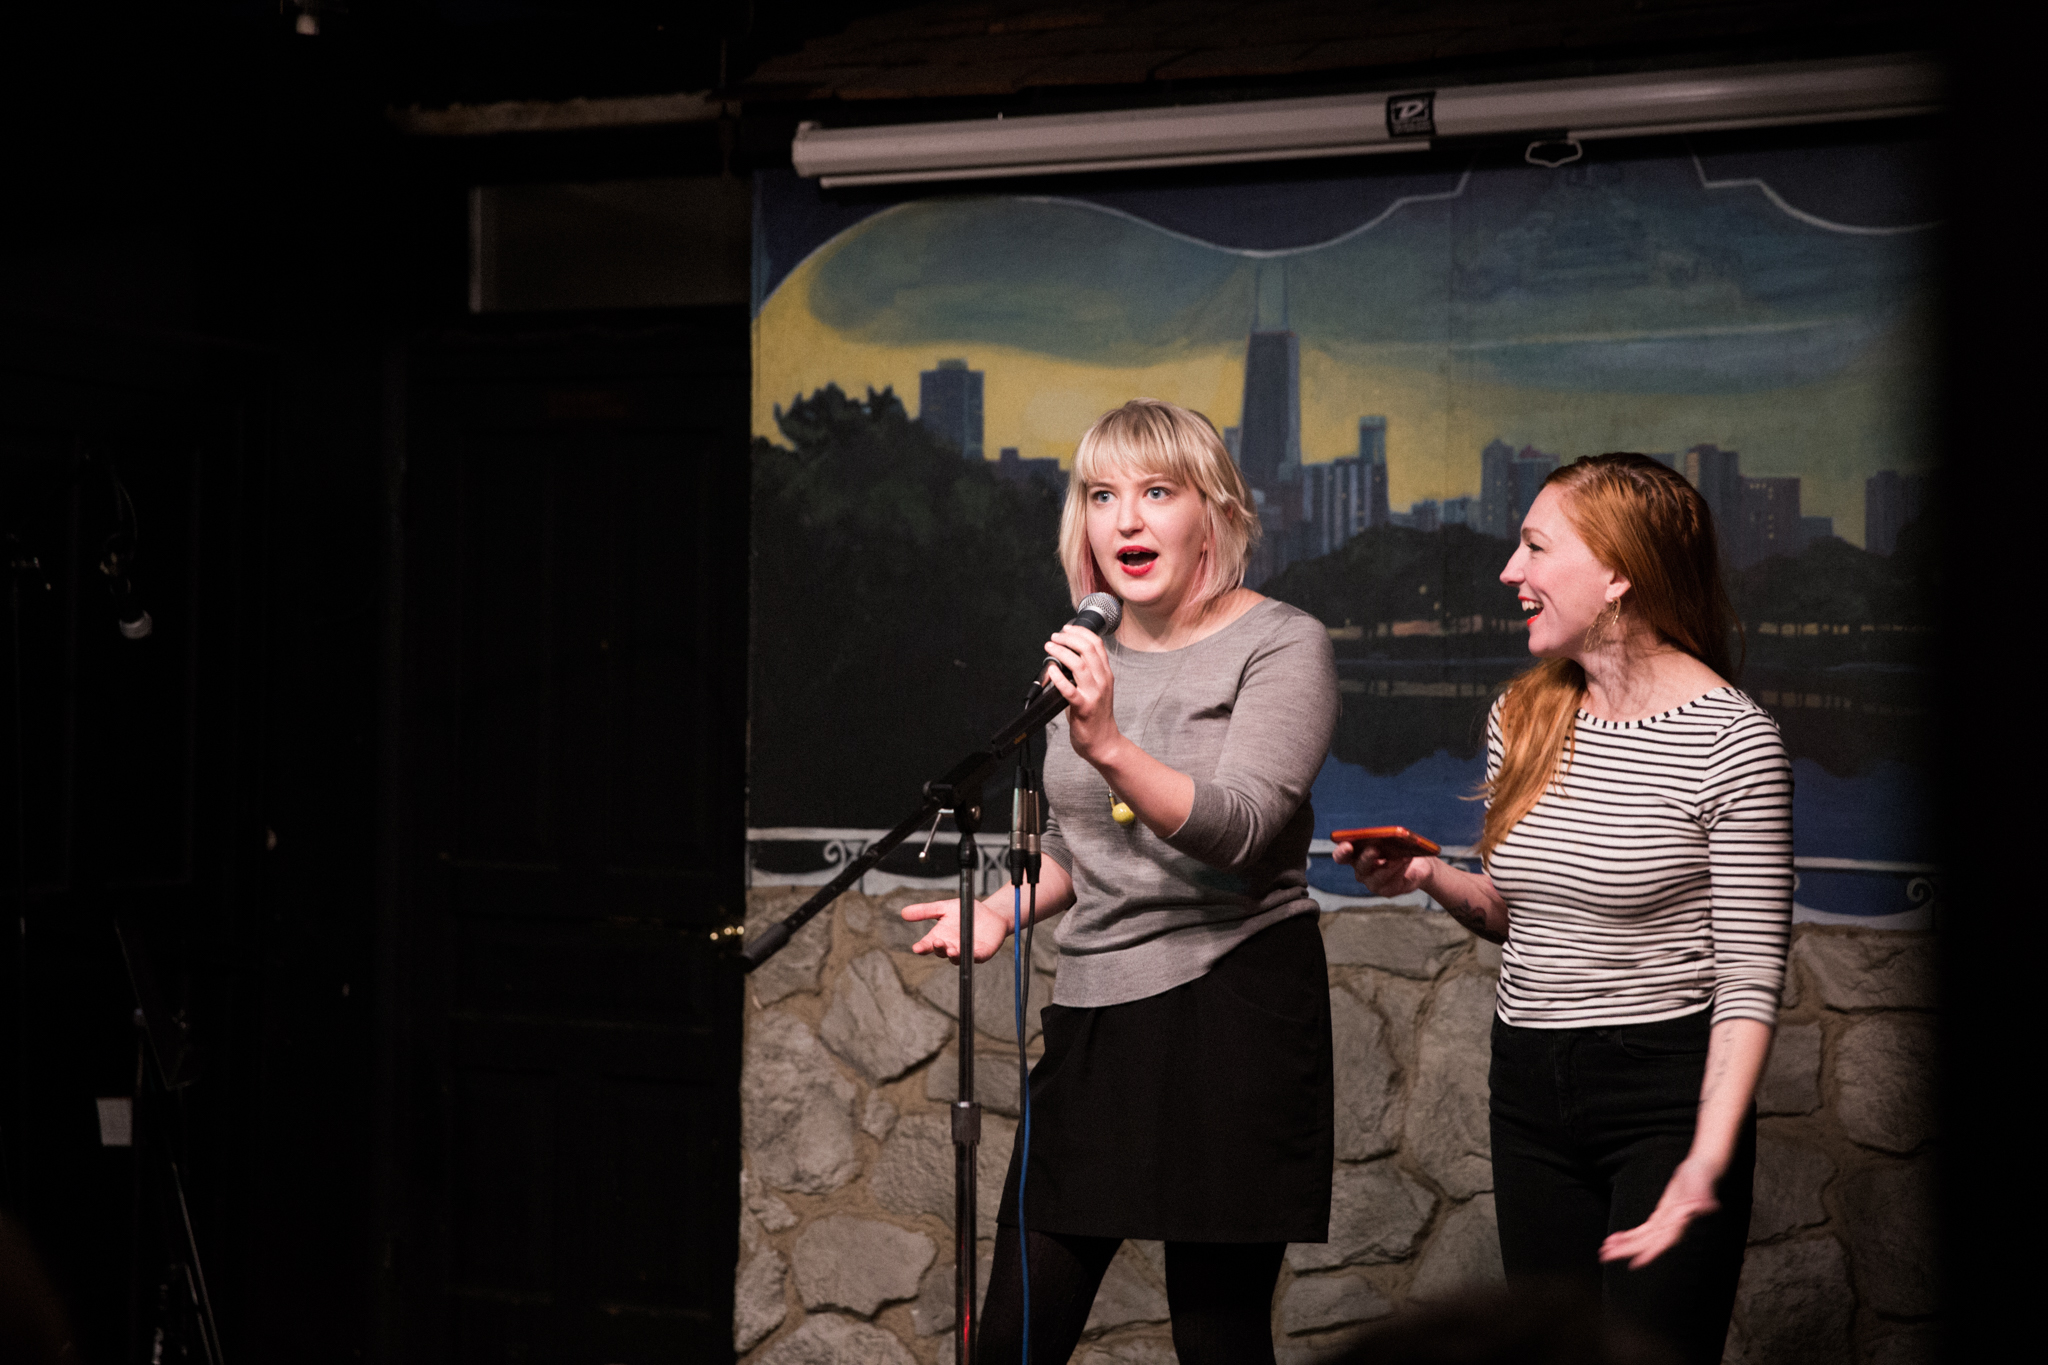 Image: Photo of Rosamund Lannin (left) and [ReaderFirstName ReaderLastName] standing on-stage at Miss Spoken at the Gallery Cabaret. Both appear in medium[-long?]-shot on the right side of the frame. Lannin looks out toward the audience (not visible) and speaks into the microphone, while [ReaderLastName] smiles and looks at Lannin. Lannin wears a grey shirt, black skirt, and black leggings. [ReaderLastName] wears a black and white striped shirt and black pants. Painted on the stage wall behind the readers is a scene showing Chicago's skyline, as if viewed from behind a stone wall. Photo by [Photographer]. Courtesy of Miss Spoken.